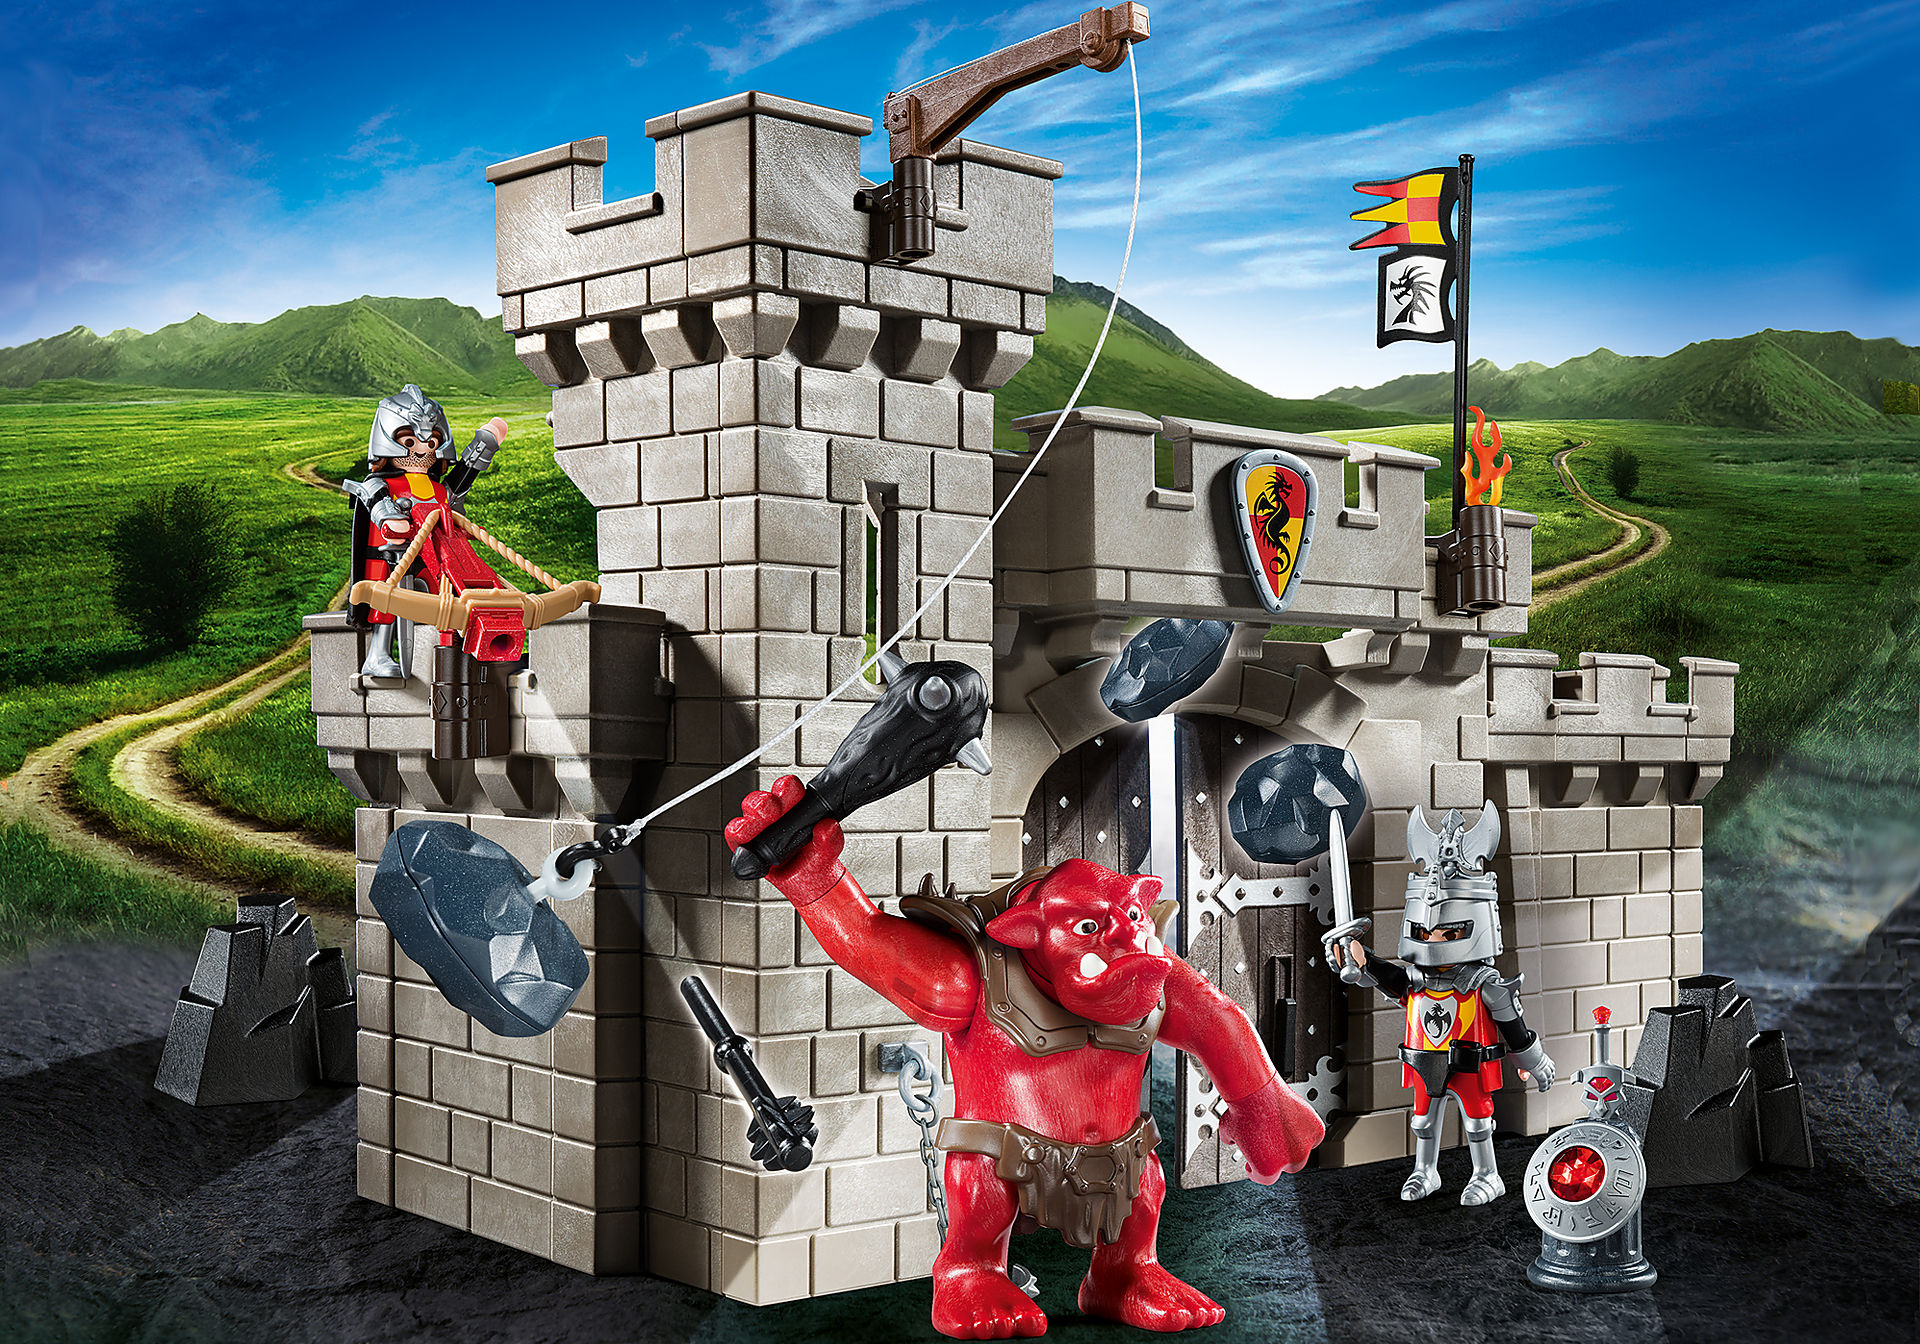 http://media.playmobil.com/i/playmobil/5670_product_detail/Burgtor mit Riesentroll